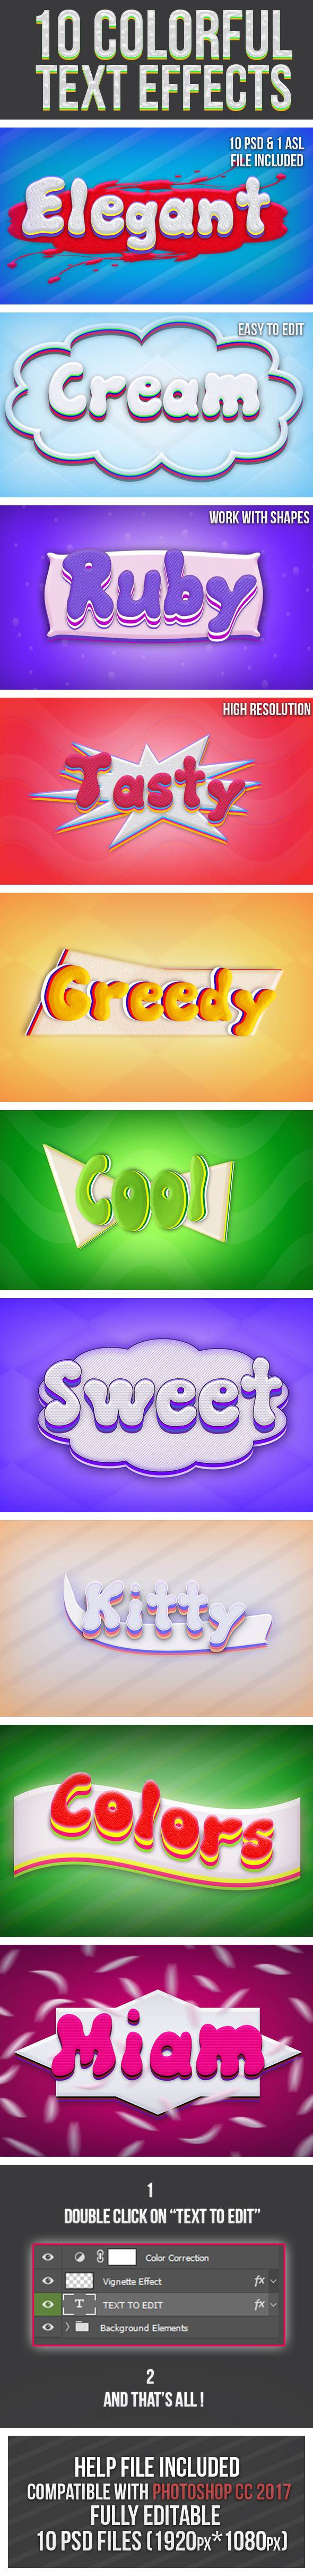 Colorful Text Effects 2 - Text Effects Styles